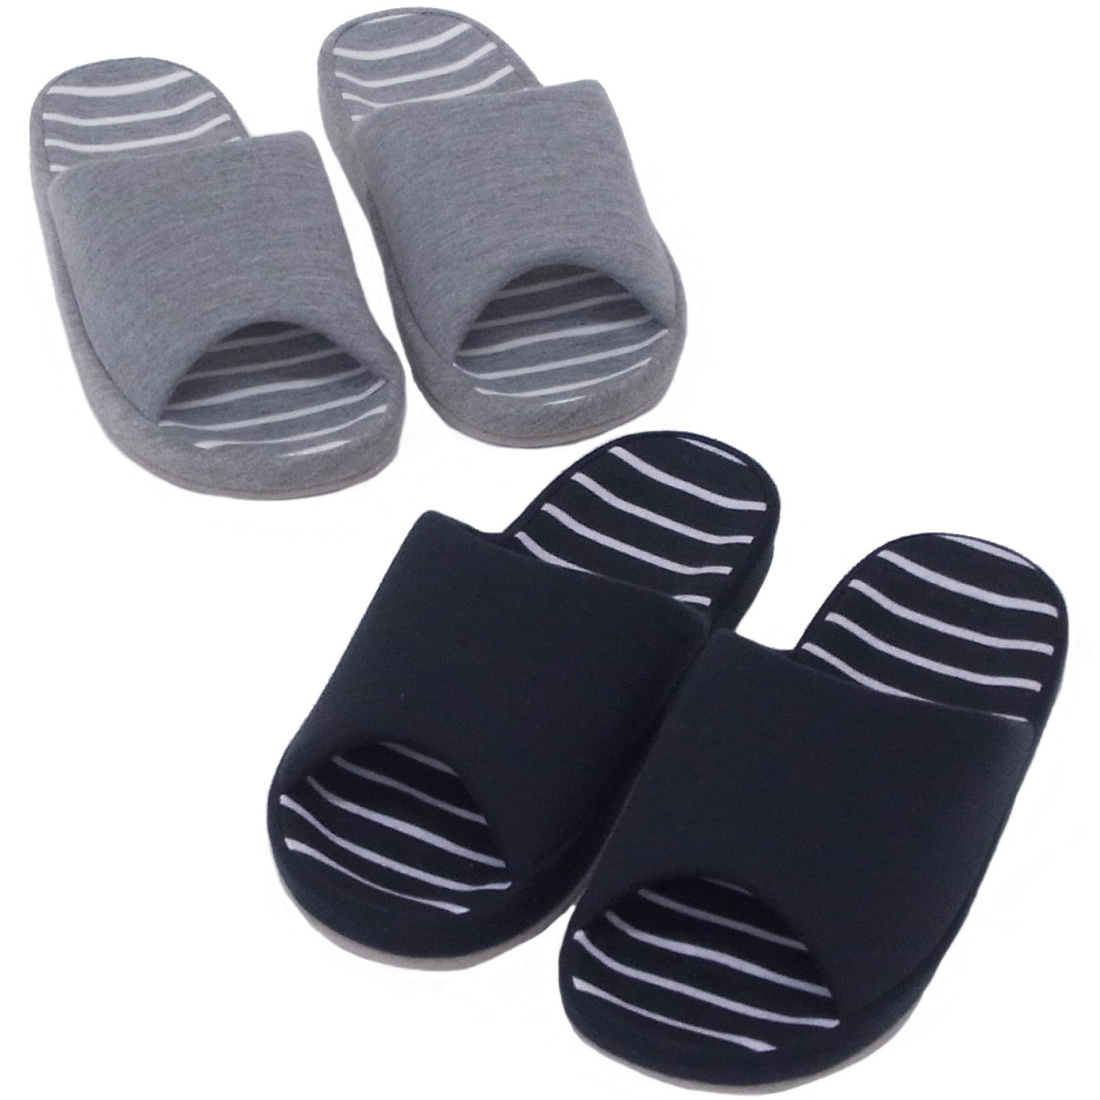 High Quality Indoor Comfort Slippers Made From A Poly-suede